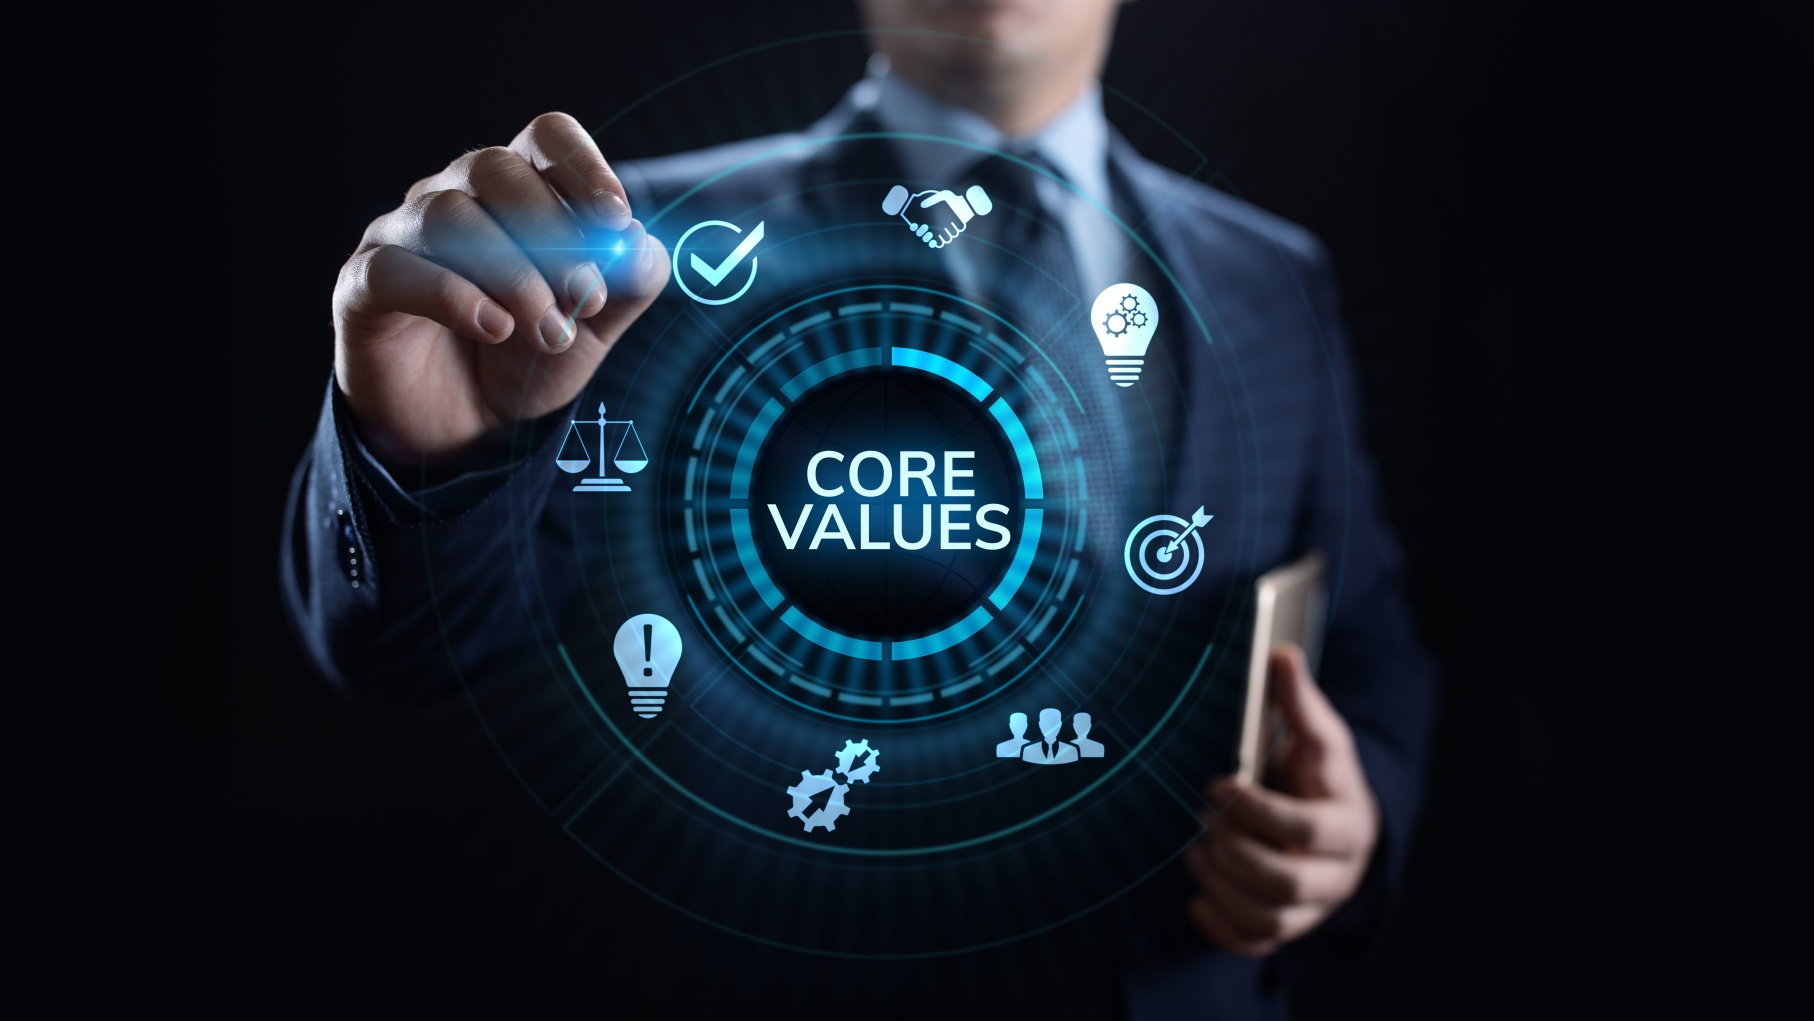 Keeping Core Values Alive in Your Company